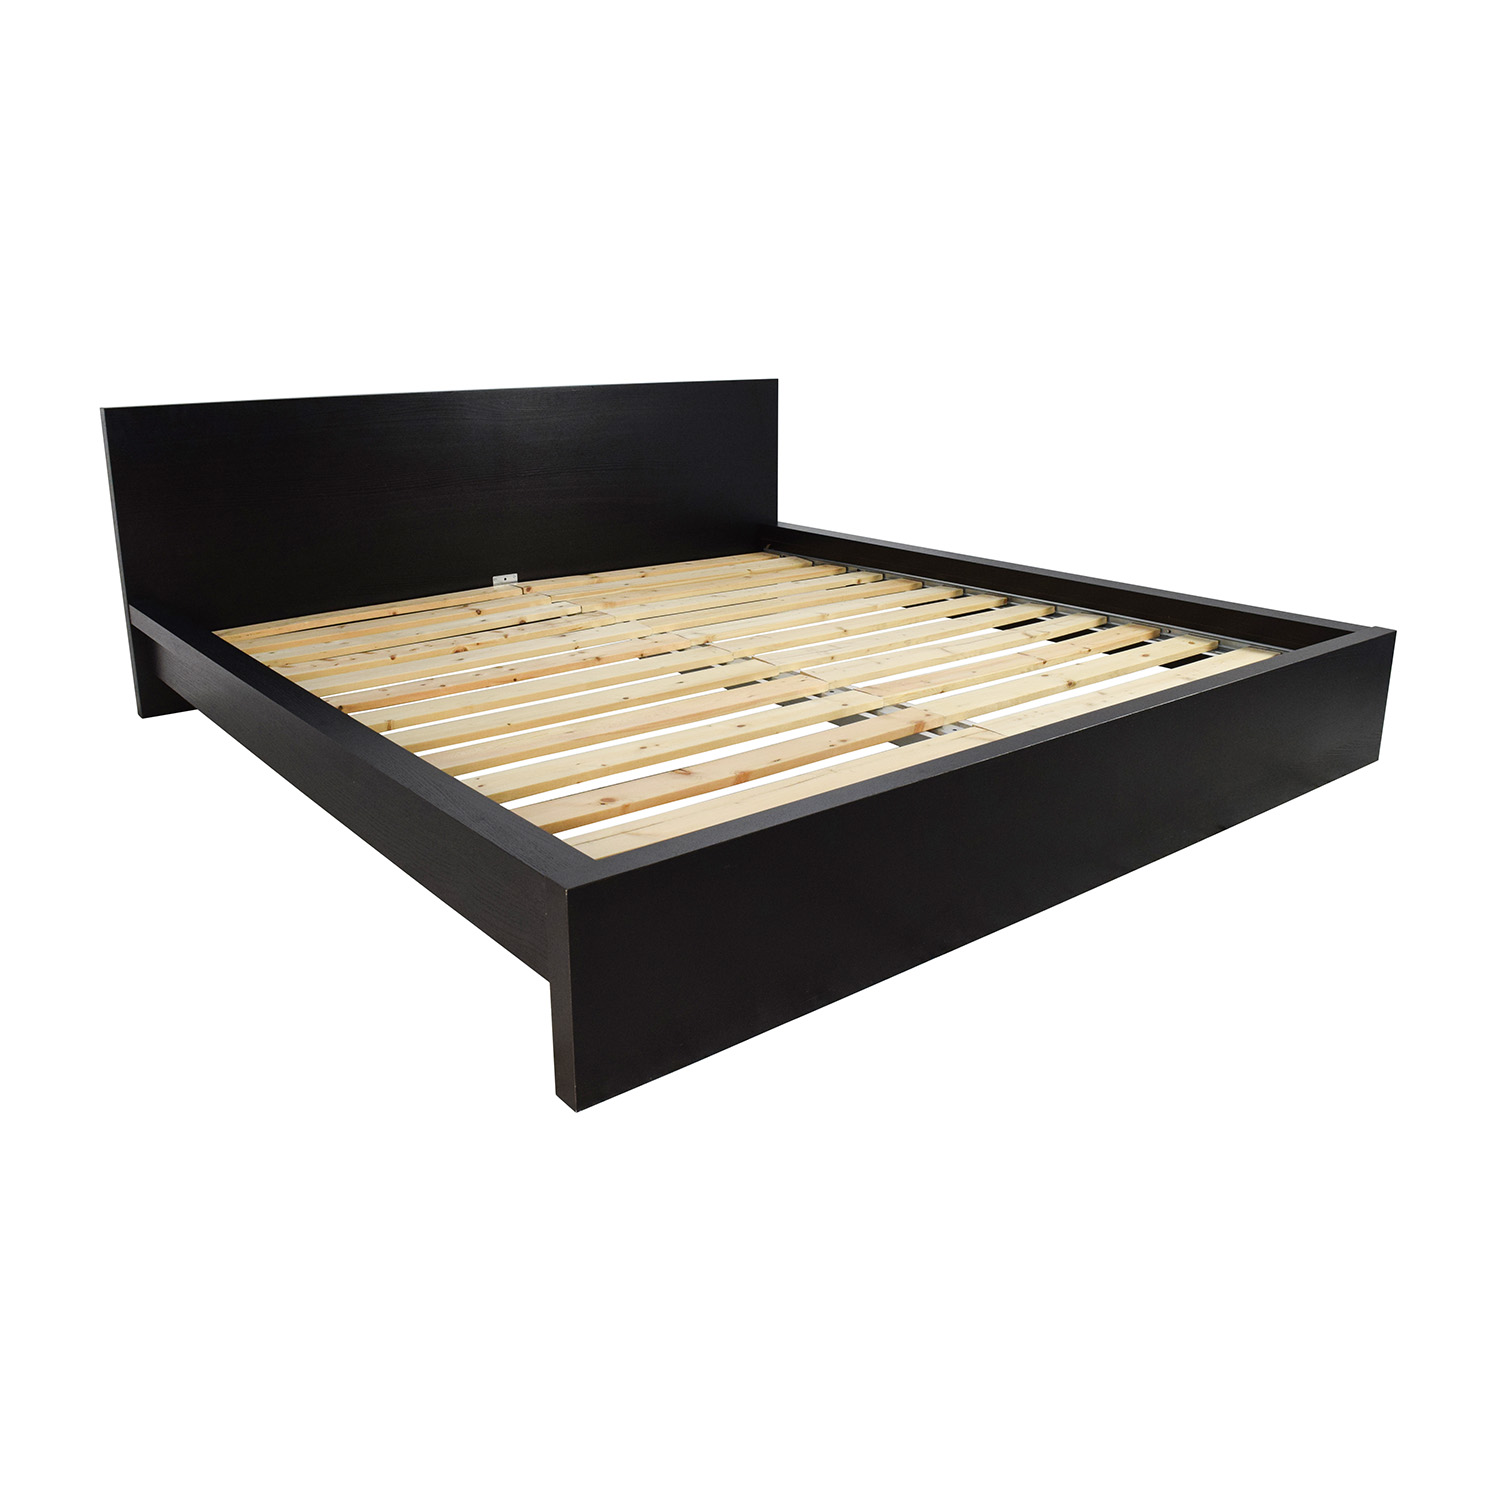 Terrific king size bed frame images inspirations dievoon for King size bed frame and mattress